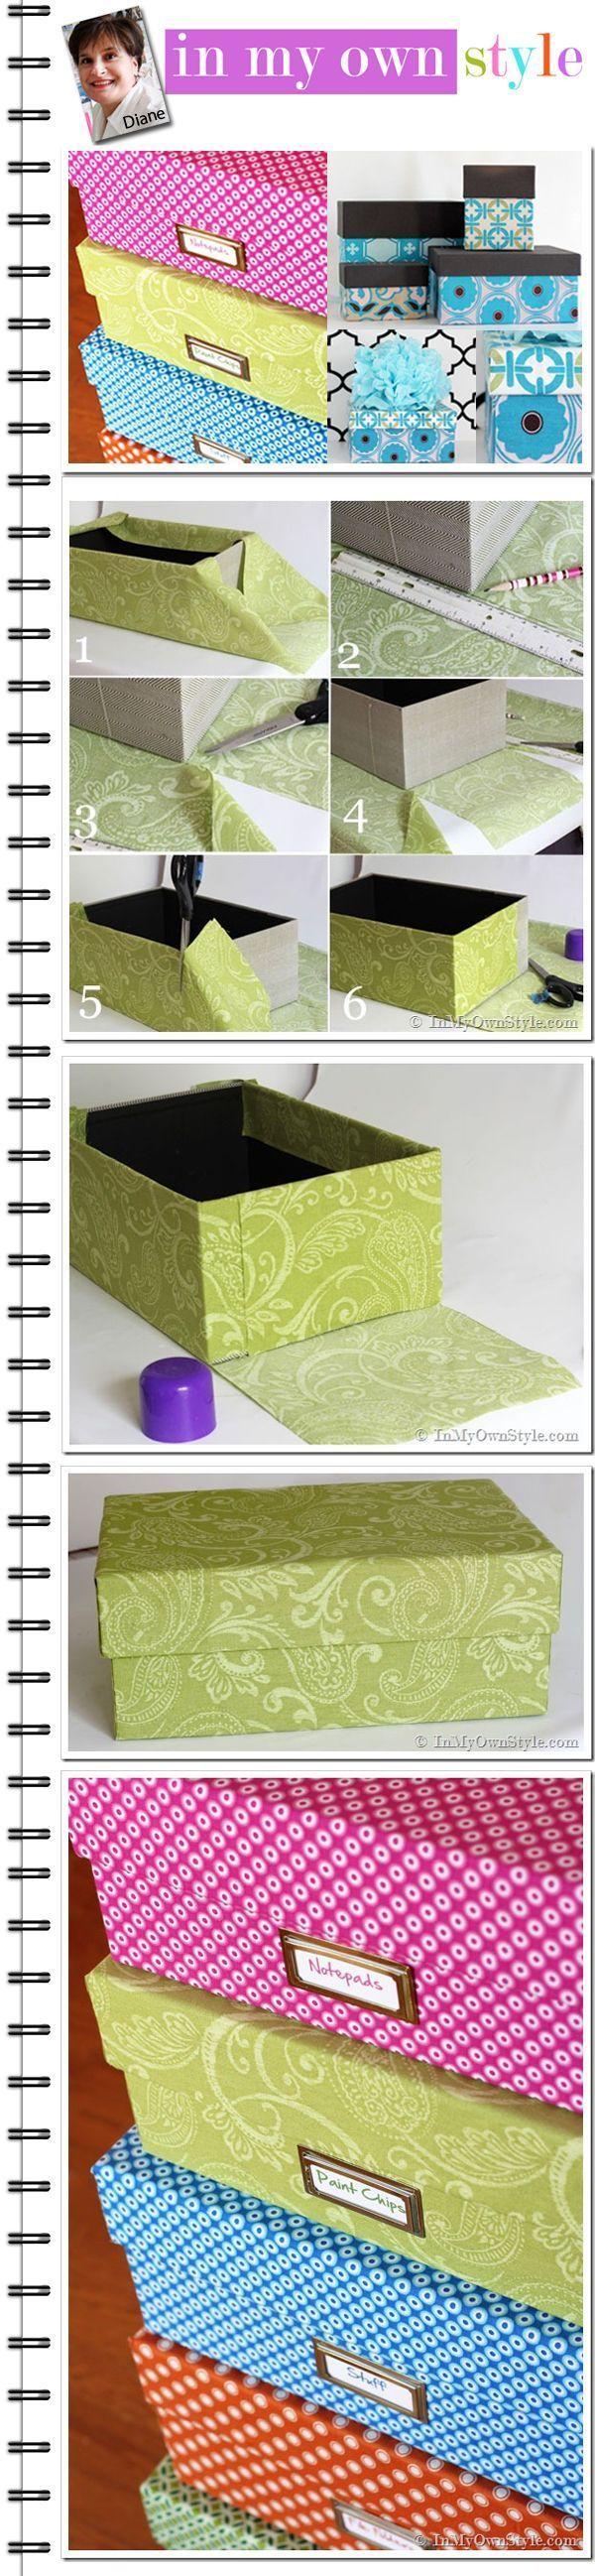 One Yard Dcor: Fabric Covered Boxes... could also use shoe boxes with lids attached or detached